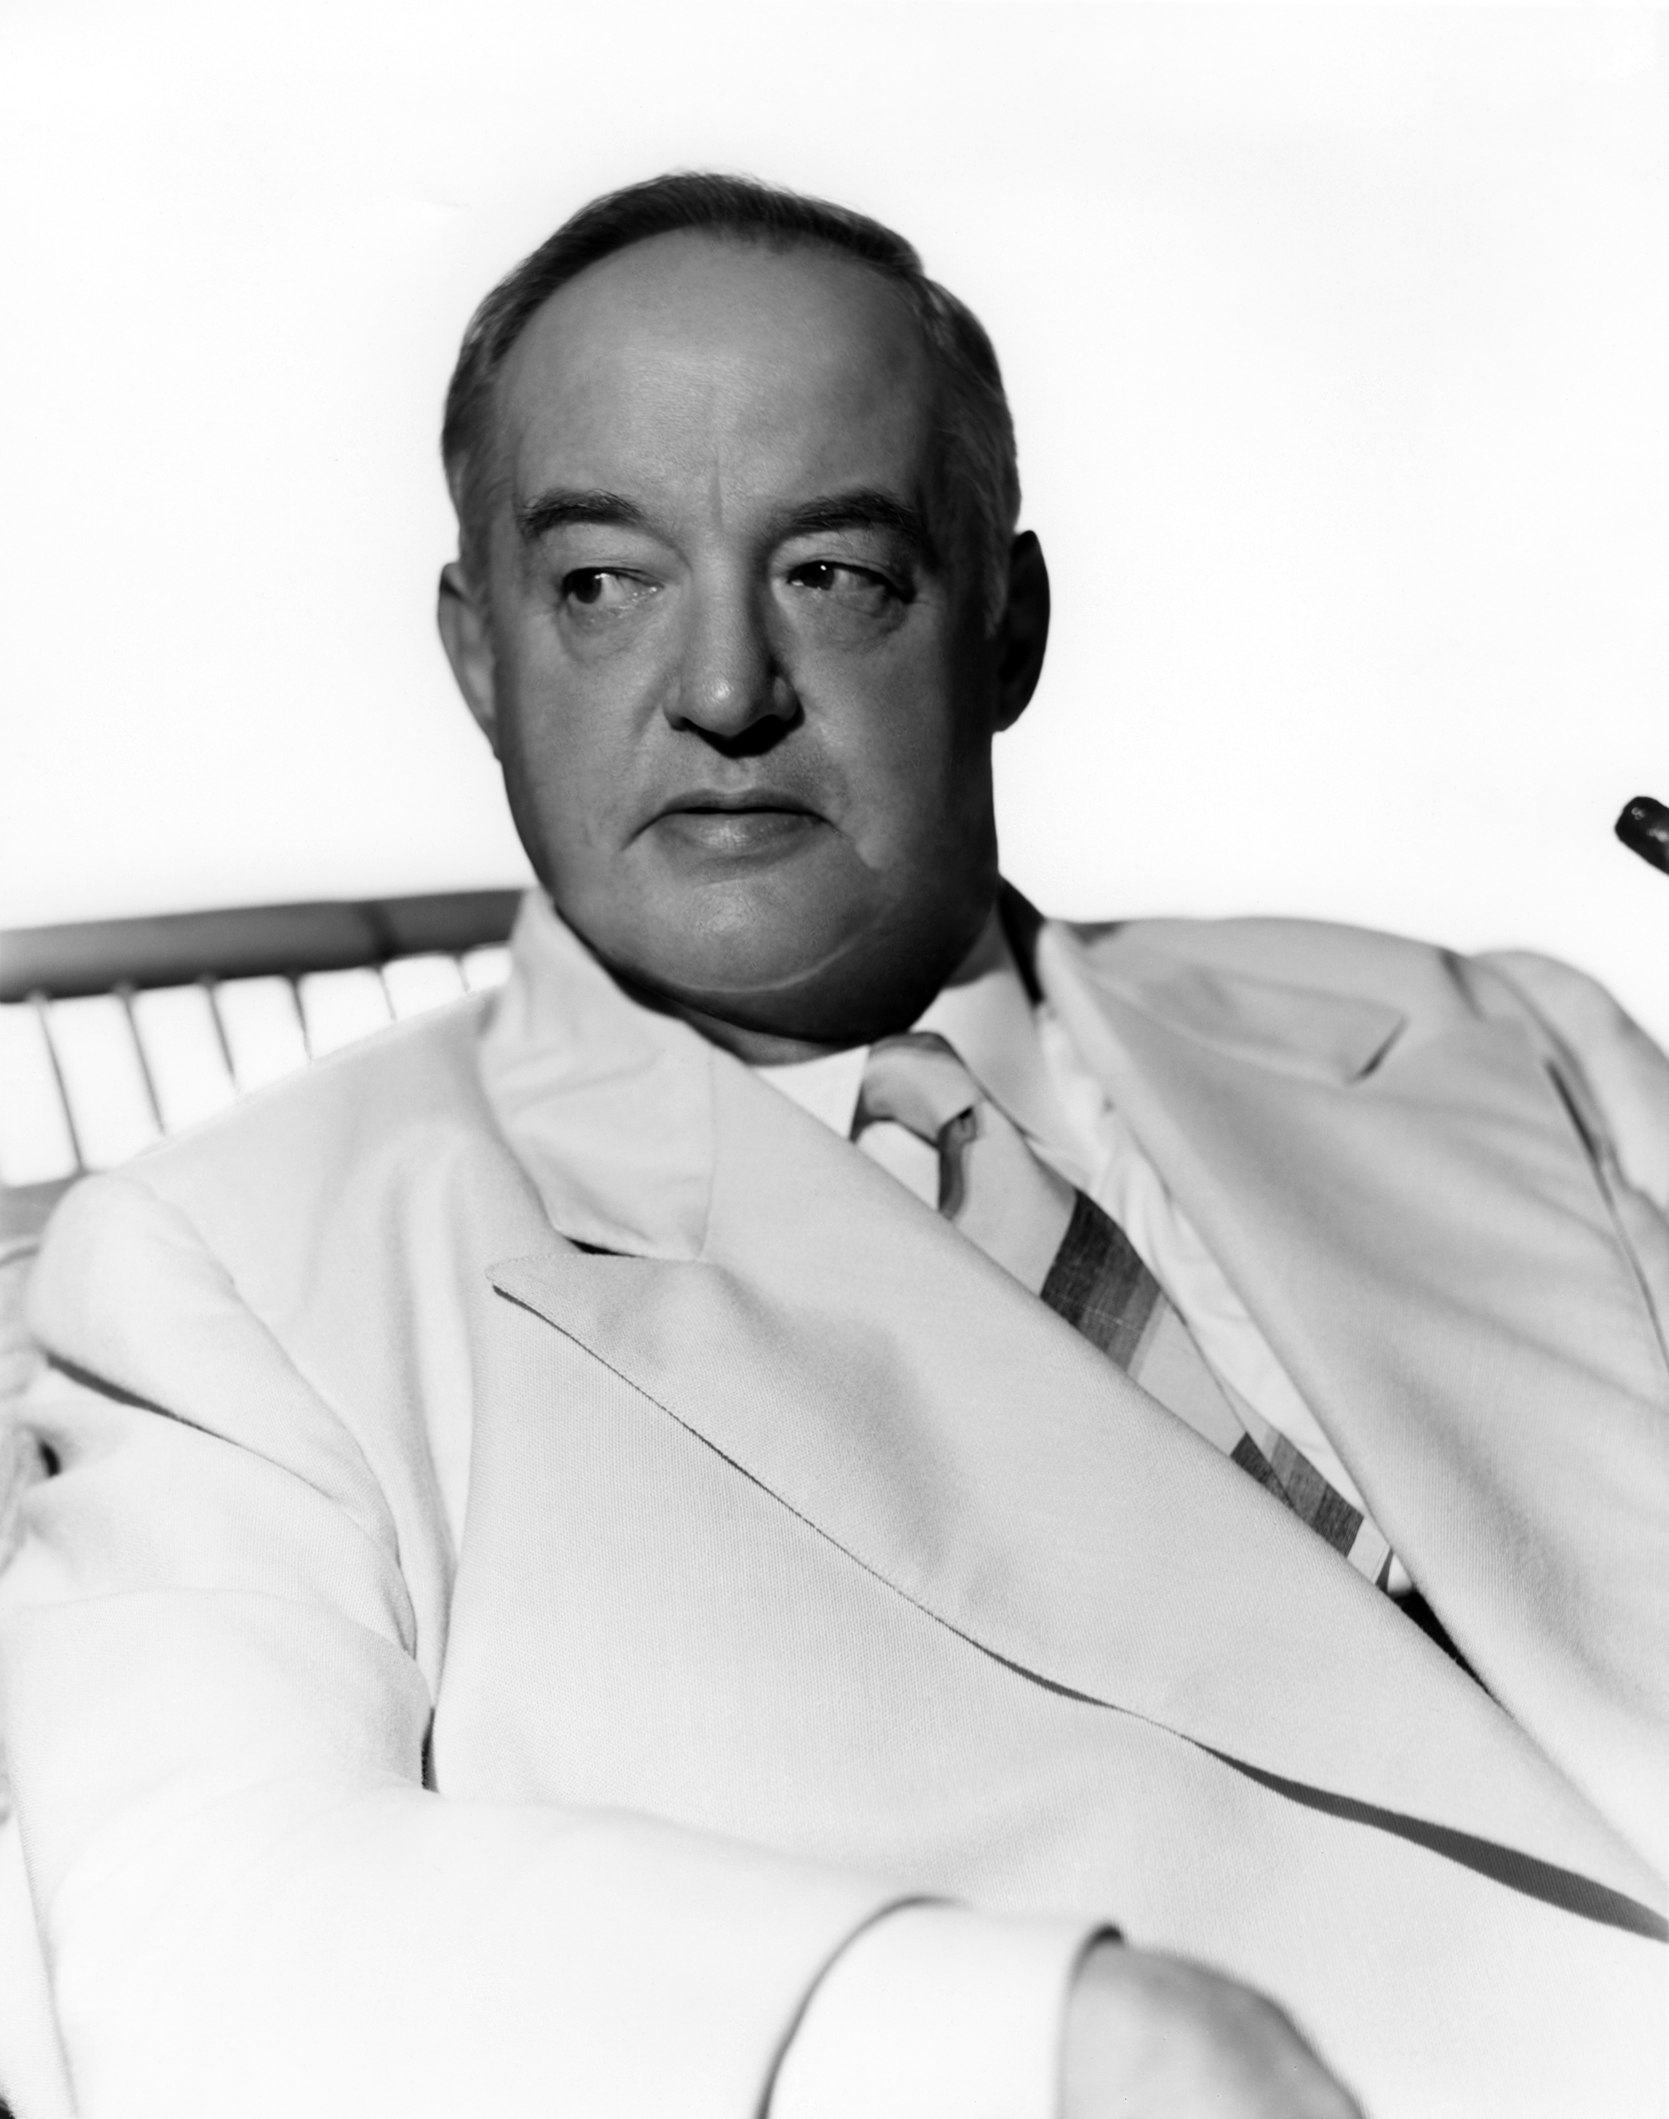 sydney greenstreet weight losssydney greenstreet weight loss, sydney greenstreet movies, sydney greenstreet casablanca, sydney greenstreet quotes, sydney greenstreet radio, sydney greenstreet maltese falcon, sydney greenstreet and peter lorre, sydney greenstreet grave, sydney greenstreet imdb, sydney greenstreet maltese falcon quotes, sydney greenstreet biography, sydney greenstreet images, sydney greenstreet death, sydney greenstreet nero wolfe, sydney greenstreet young, sydney greenstreet wife, sydney greenstreet humphrey bogart movies, sydney greenstreet casablanca quotes, sydney greenstreet find a grave, sydney greenstreet laugh